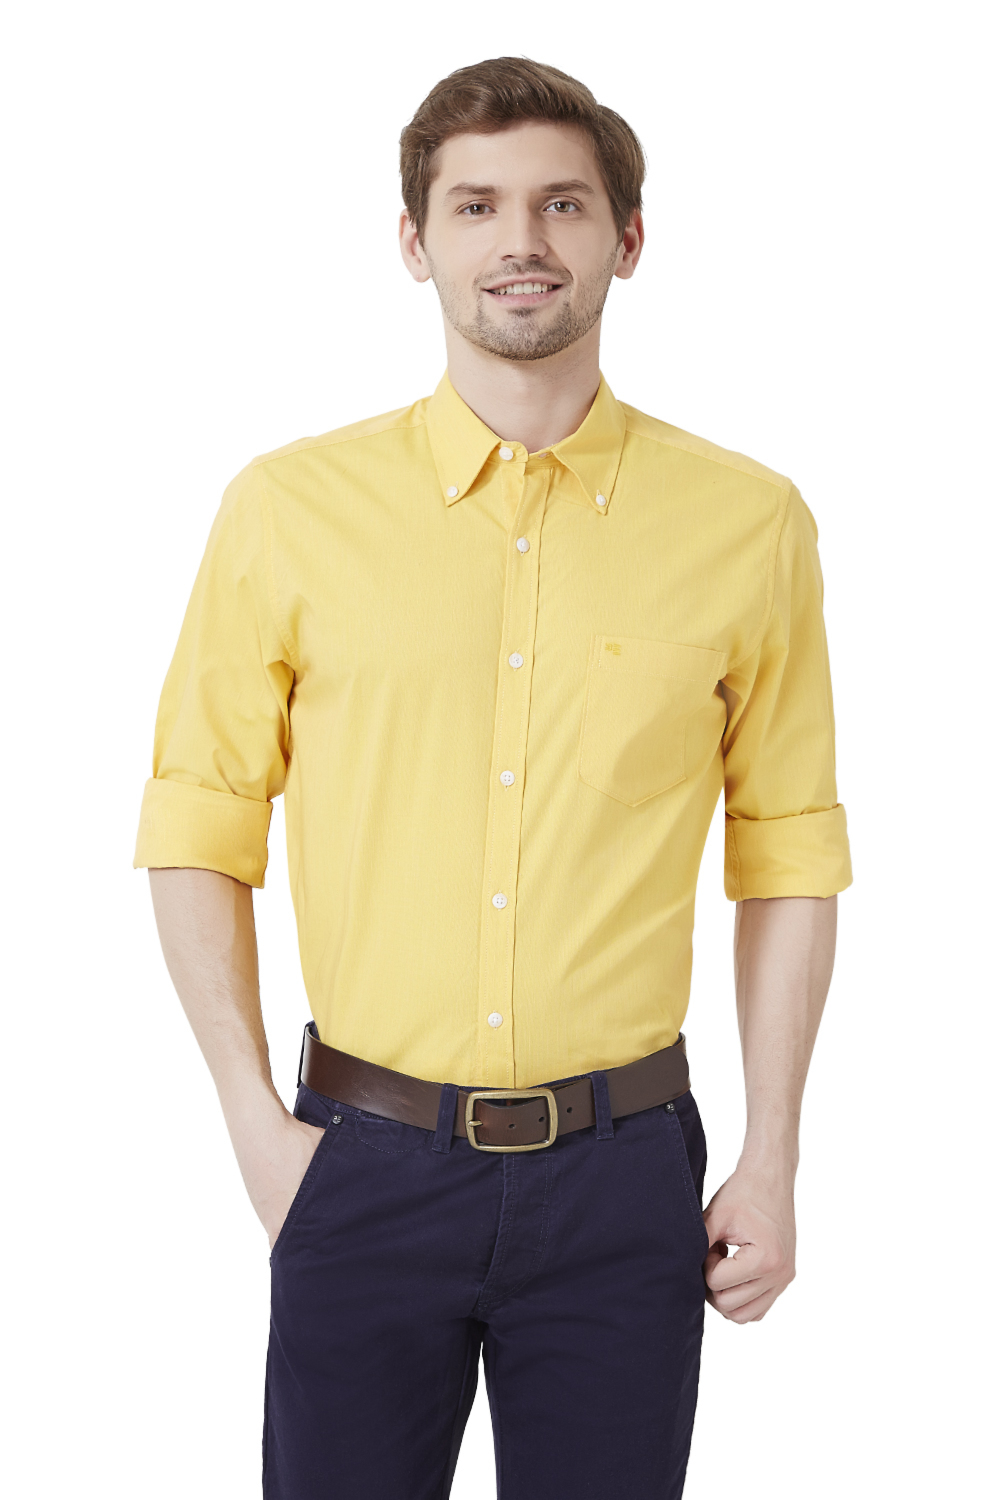 Top 10 fashionable yellow shirts for men and women for Best shirts for men